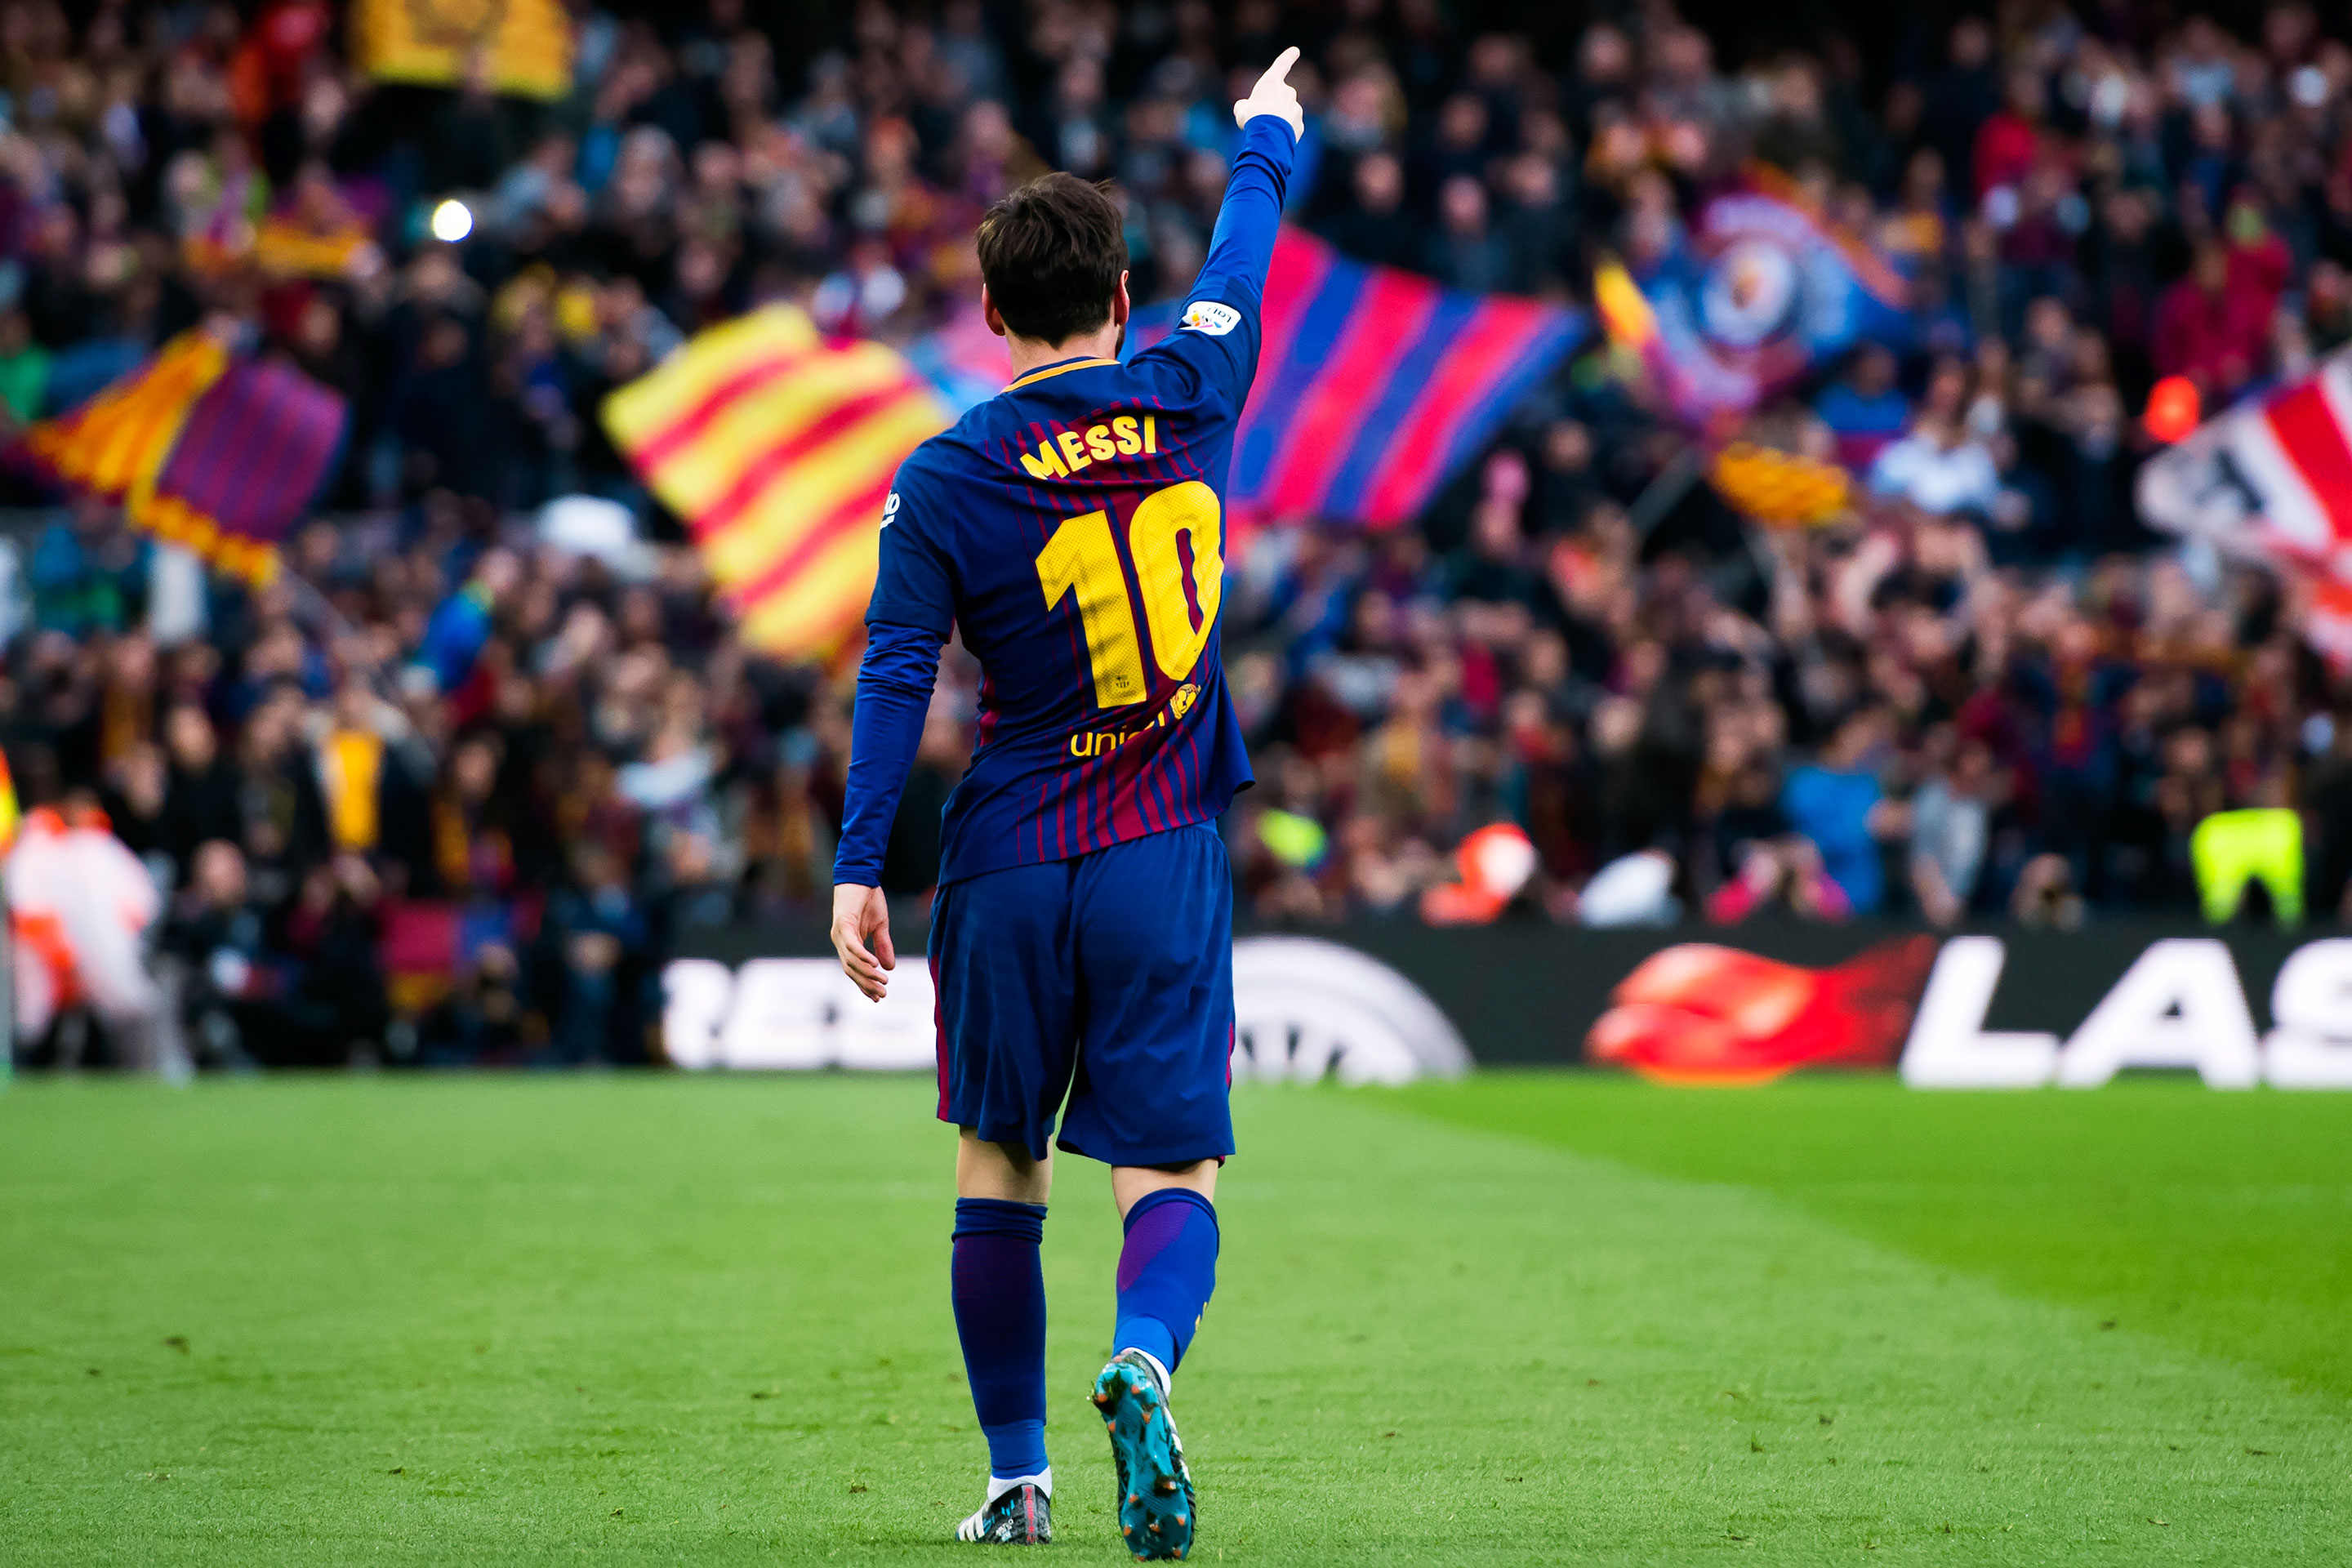 Barcelona's Lionel Messi celebrates after scoring a goal vs. Atlético Madrid on March 4.